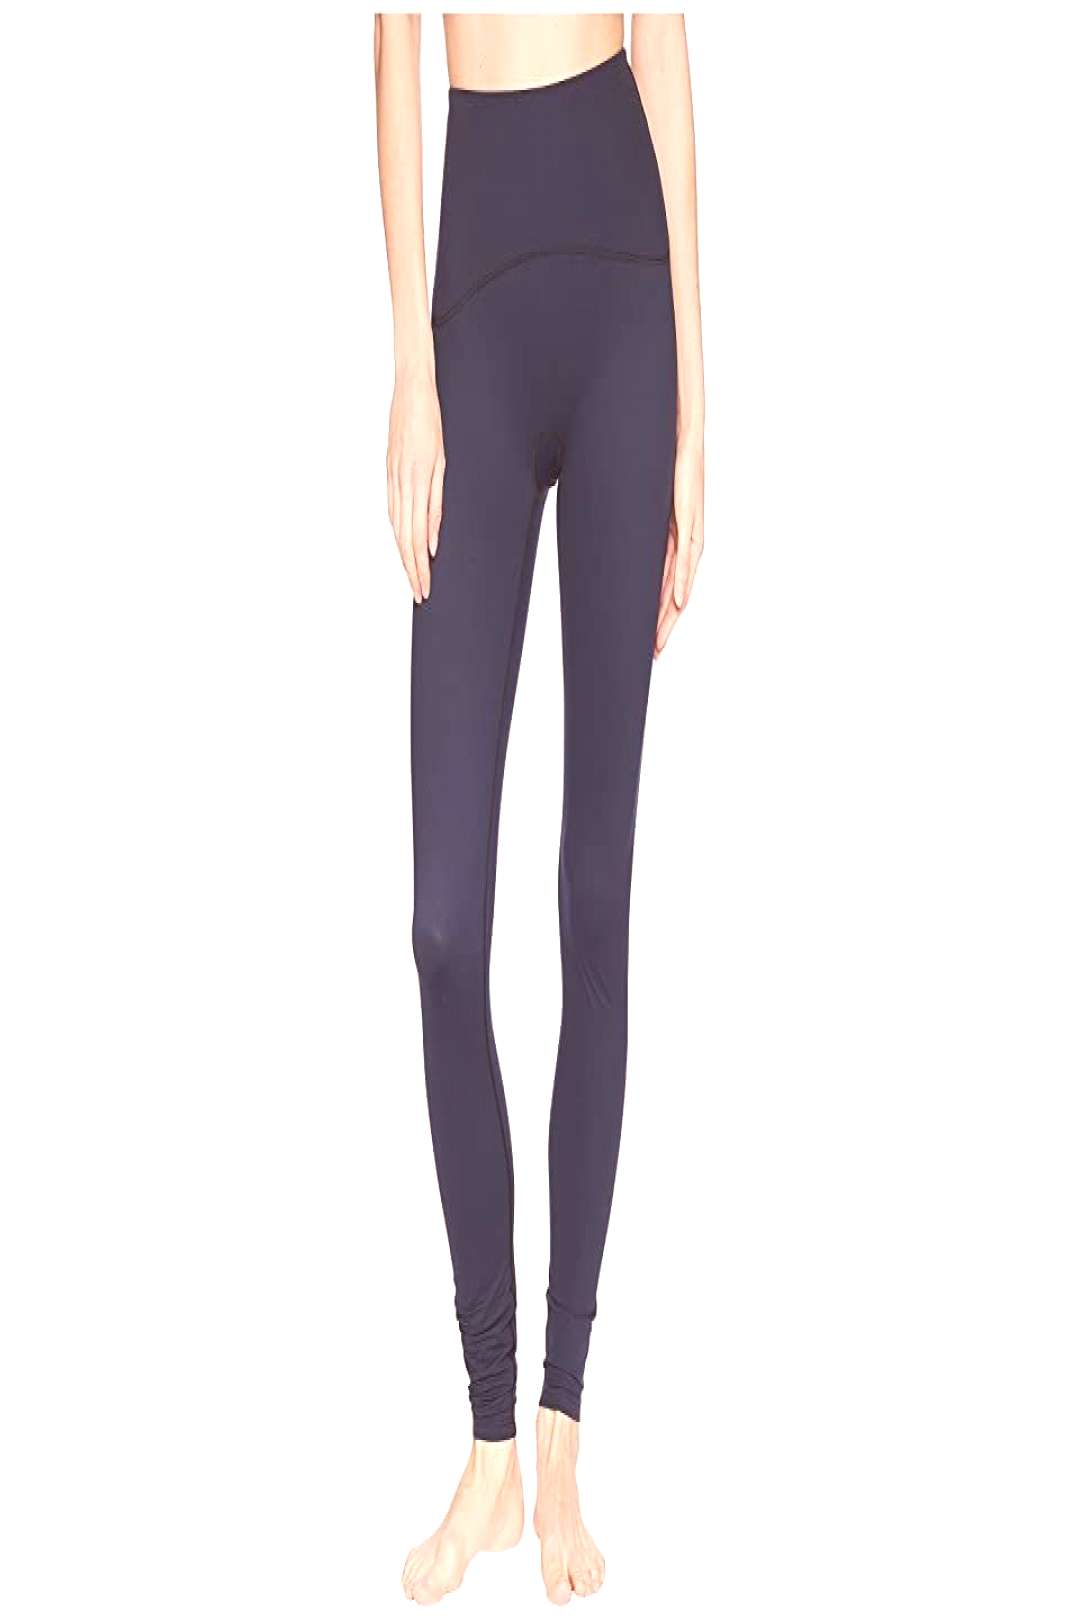 Spanx Active Shaping Compression Close-Fit Pants (Lapis) Women's Clothing. The perfect active leggi